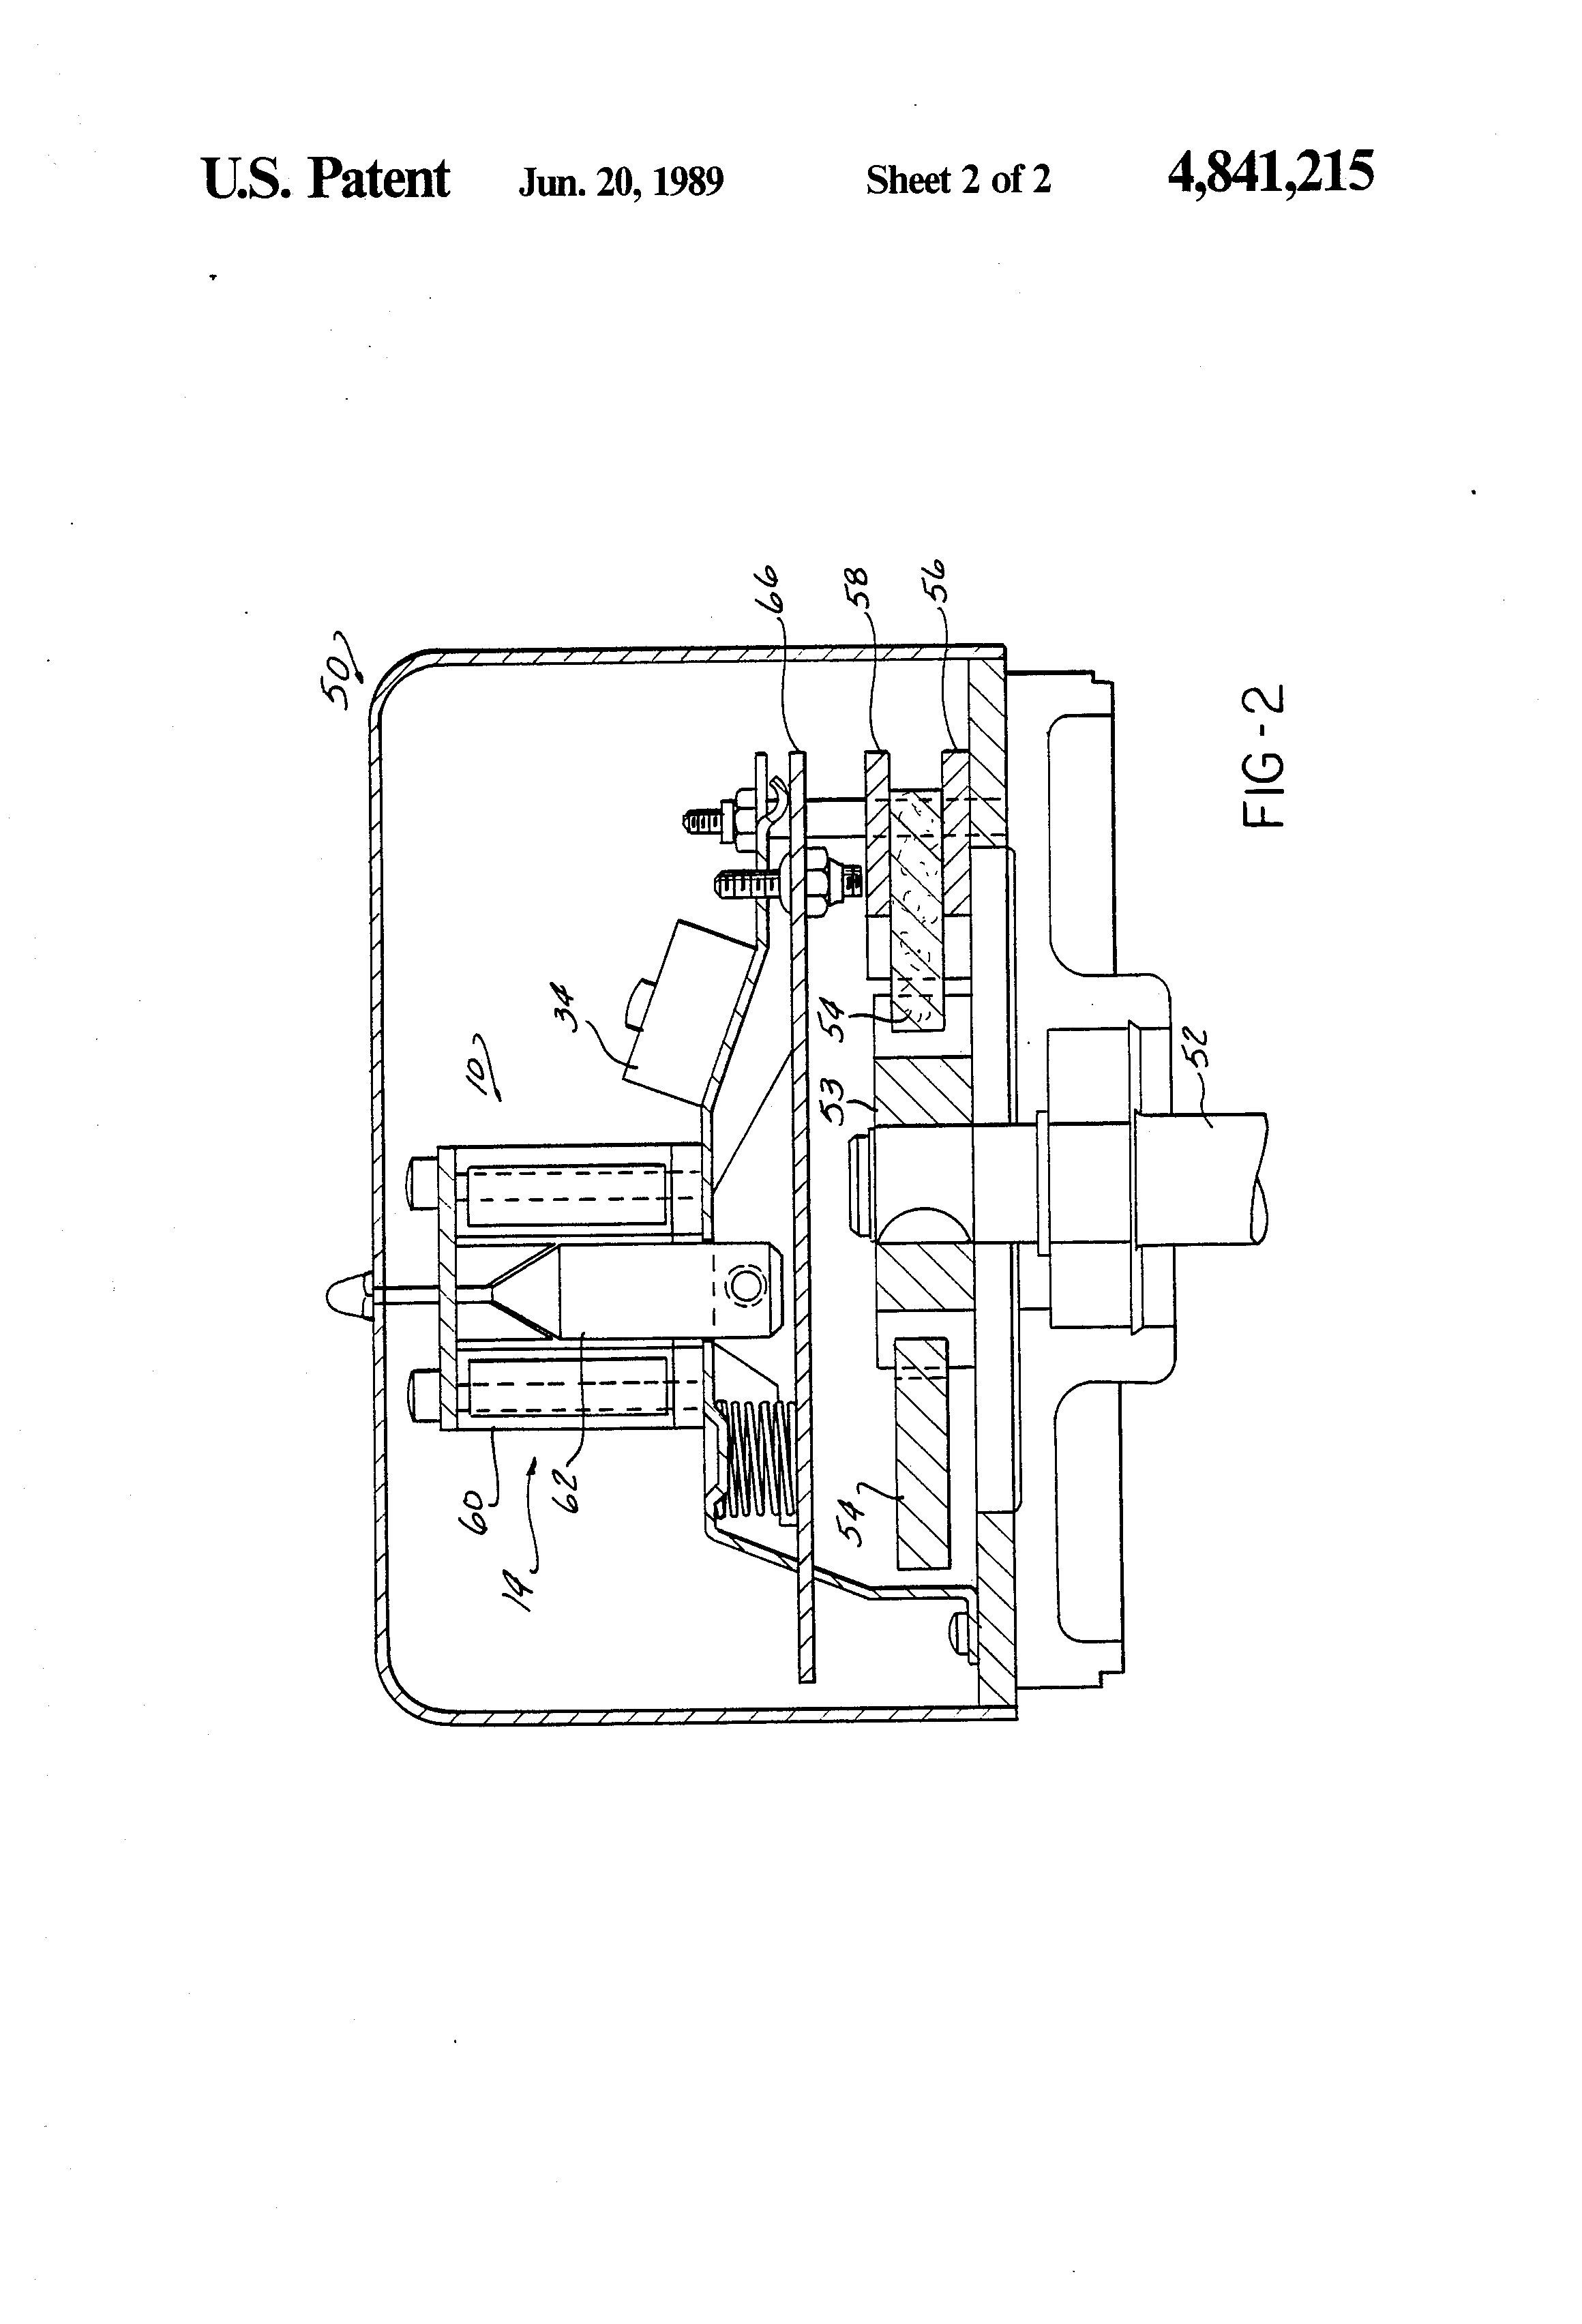 patent us4841215 d c solenoid control circuit google patents patent drawing